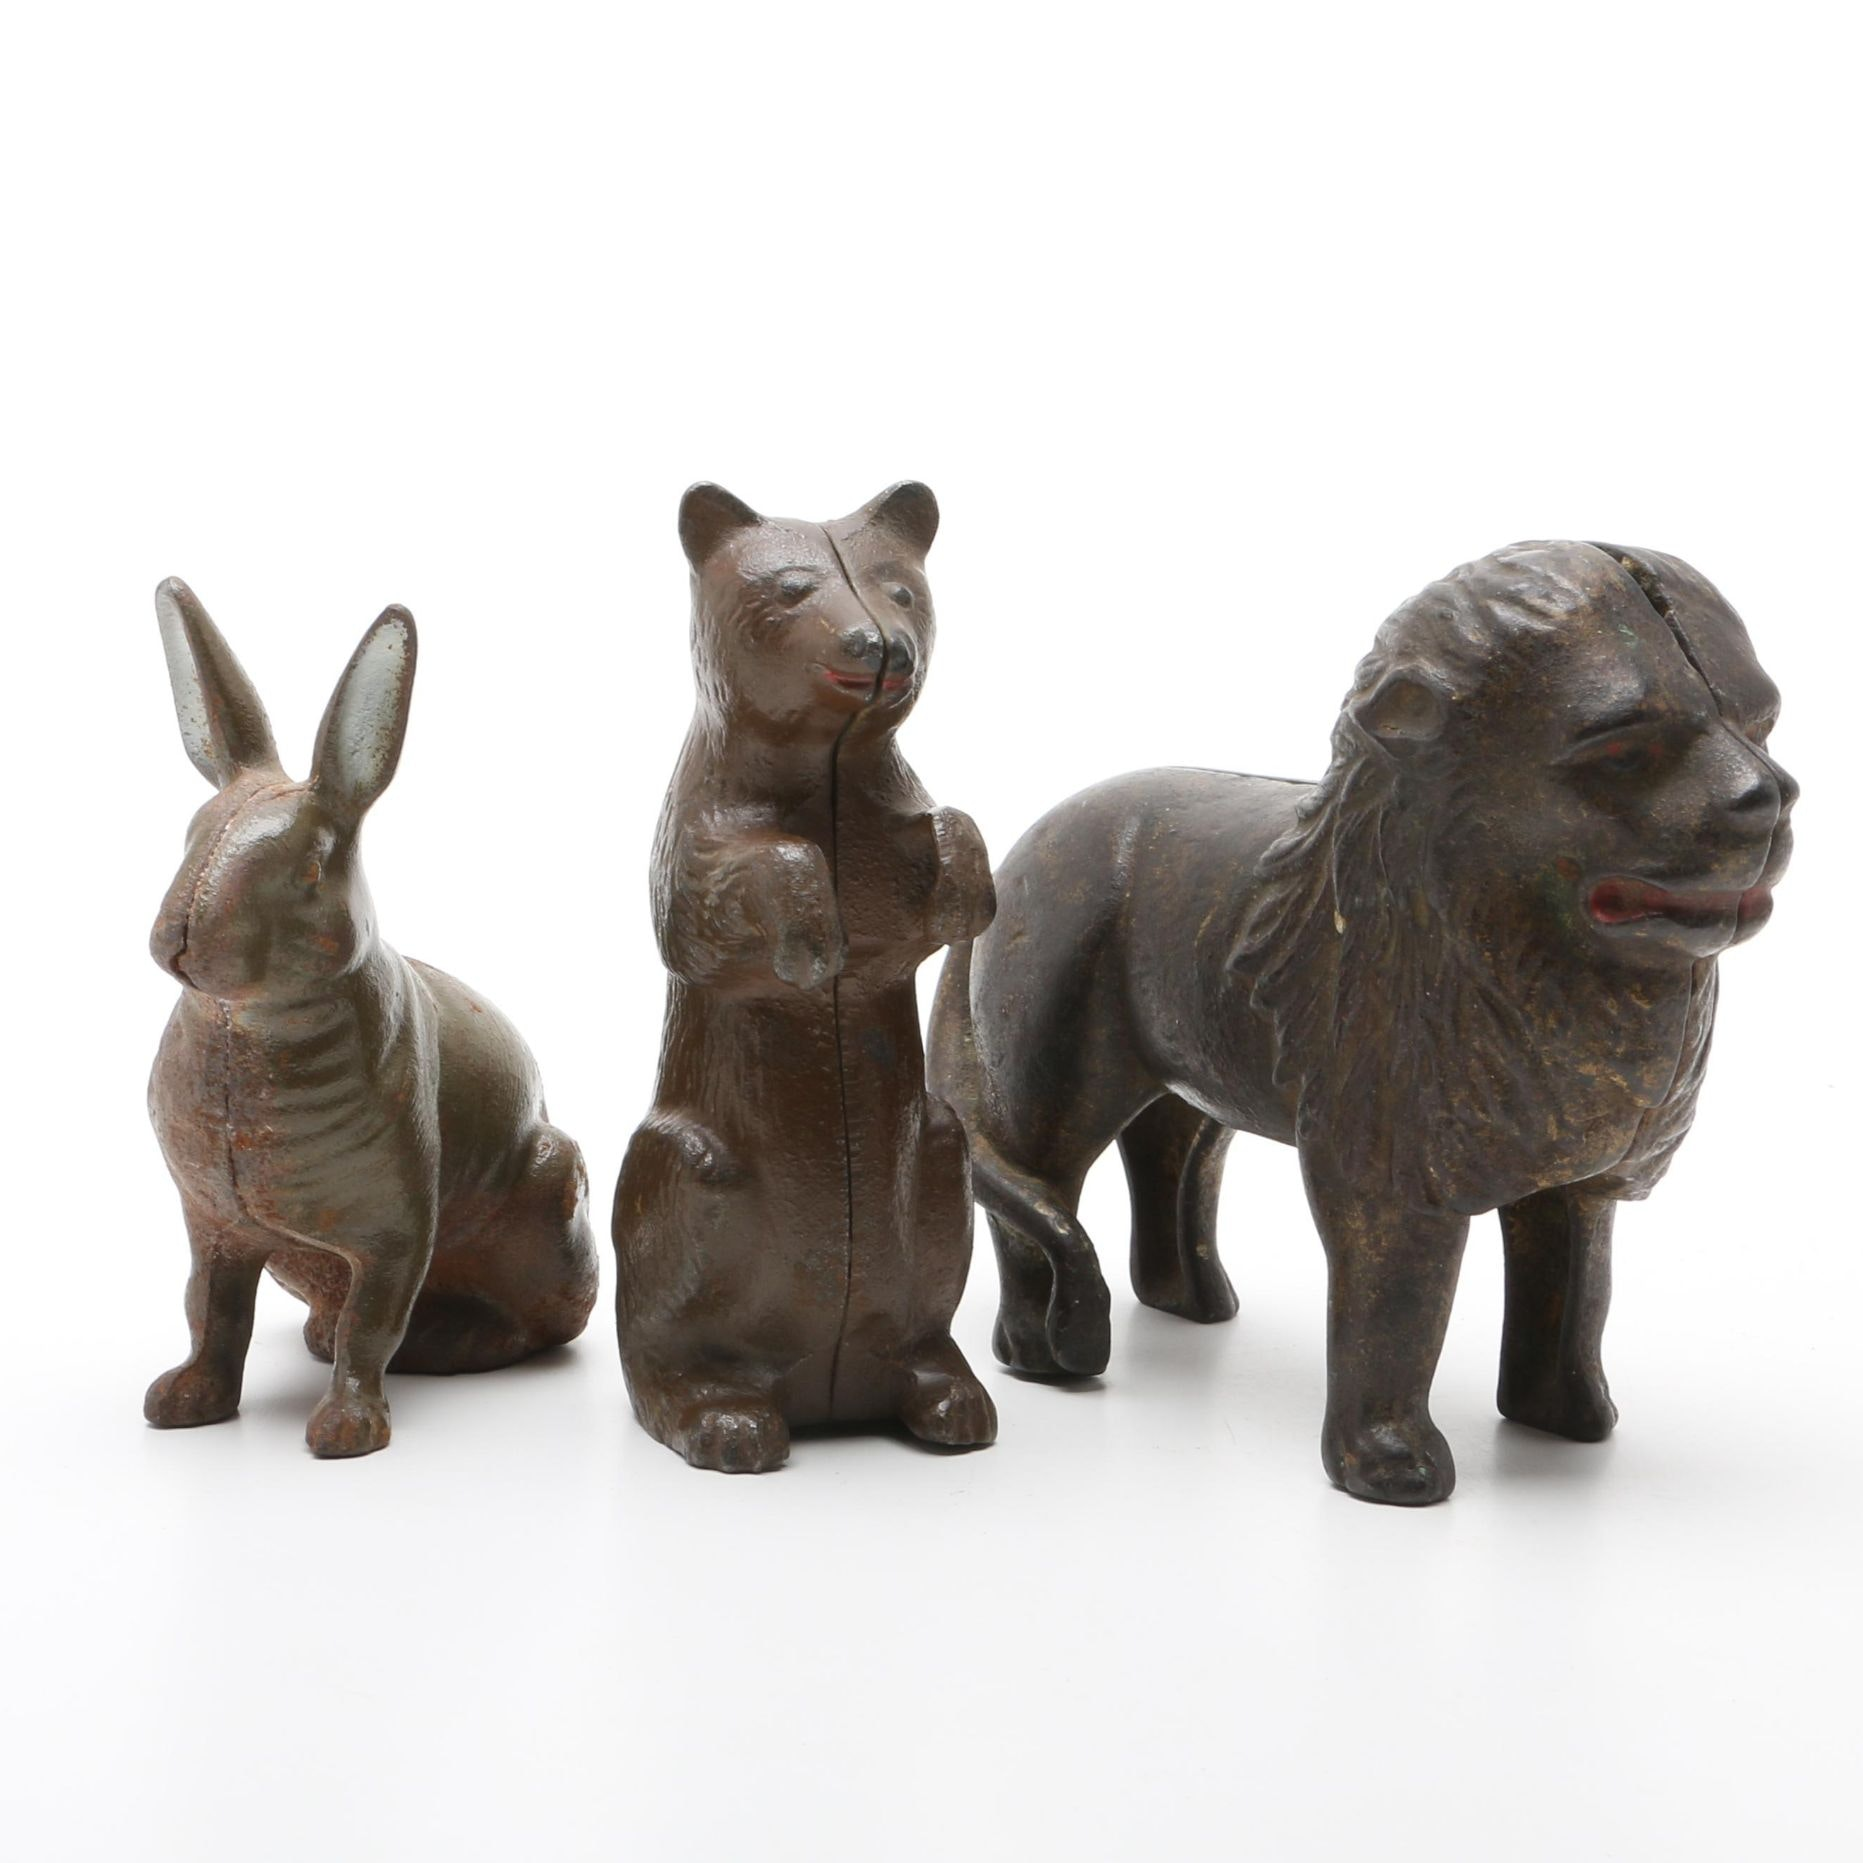 Vintage Cast Iron Banks of a Rabbit, a Bear, and a Lion